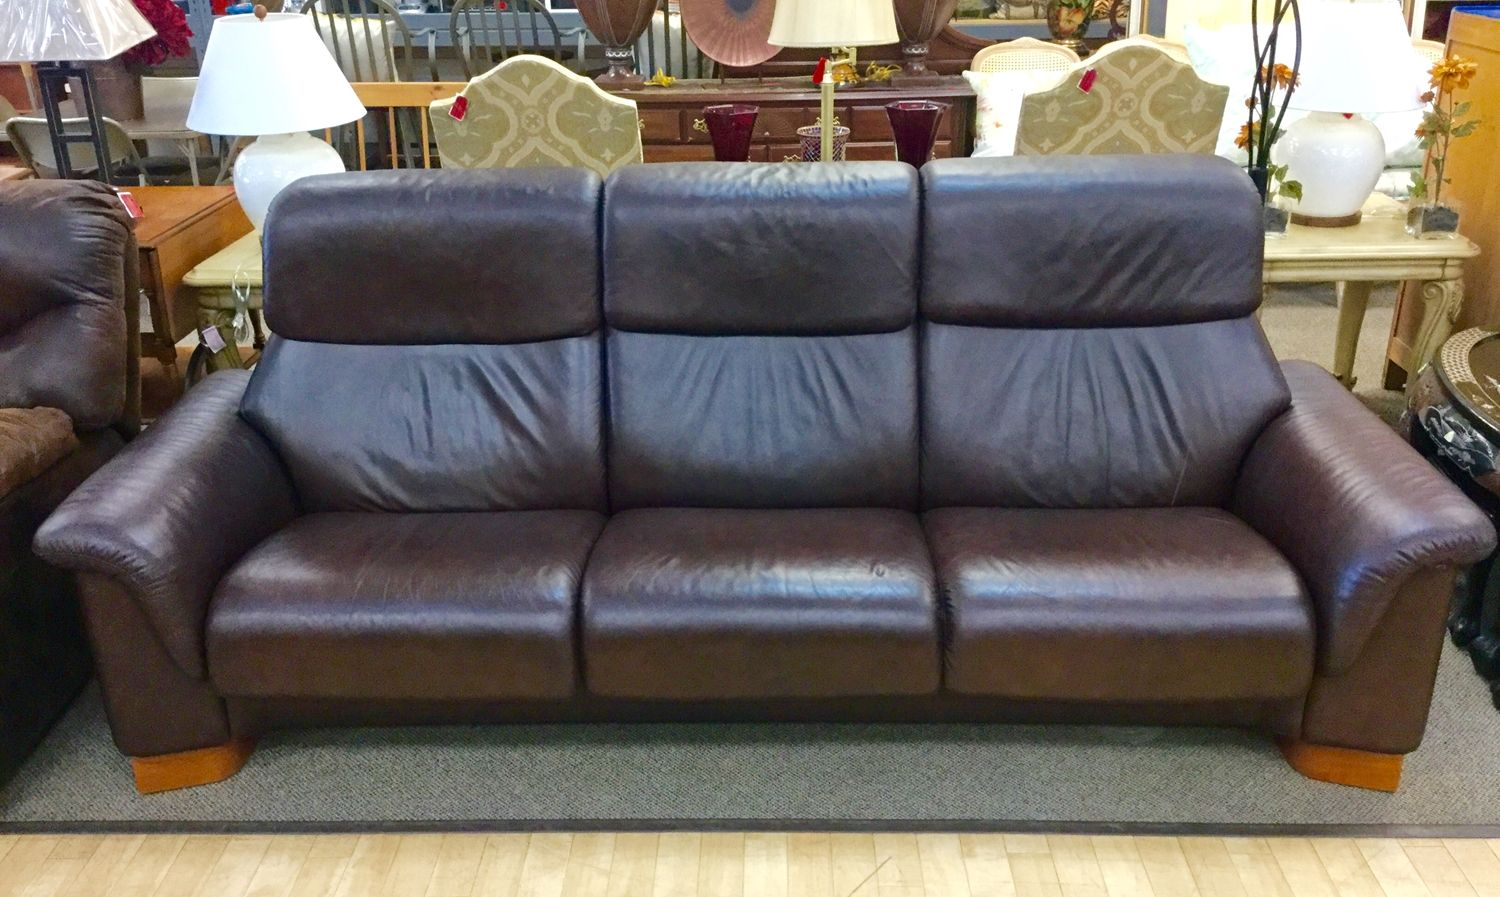 Find High End Furniture At Unbelievable Prices That S New Uses